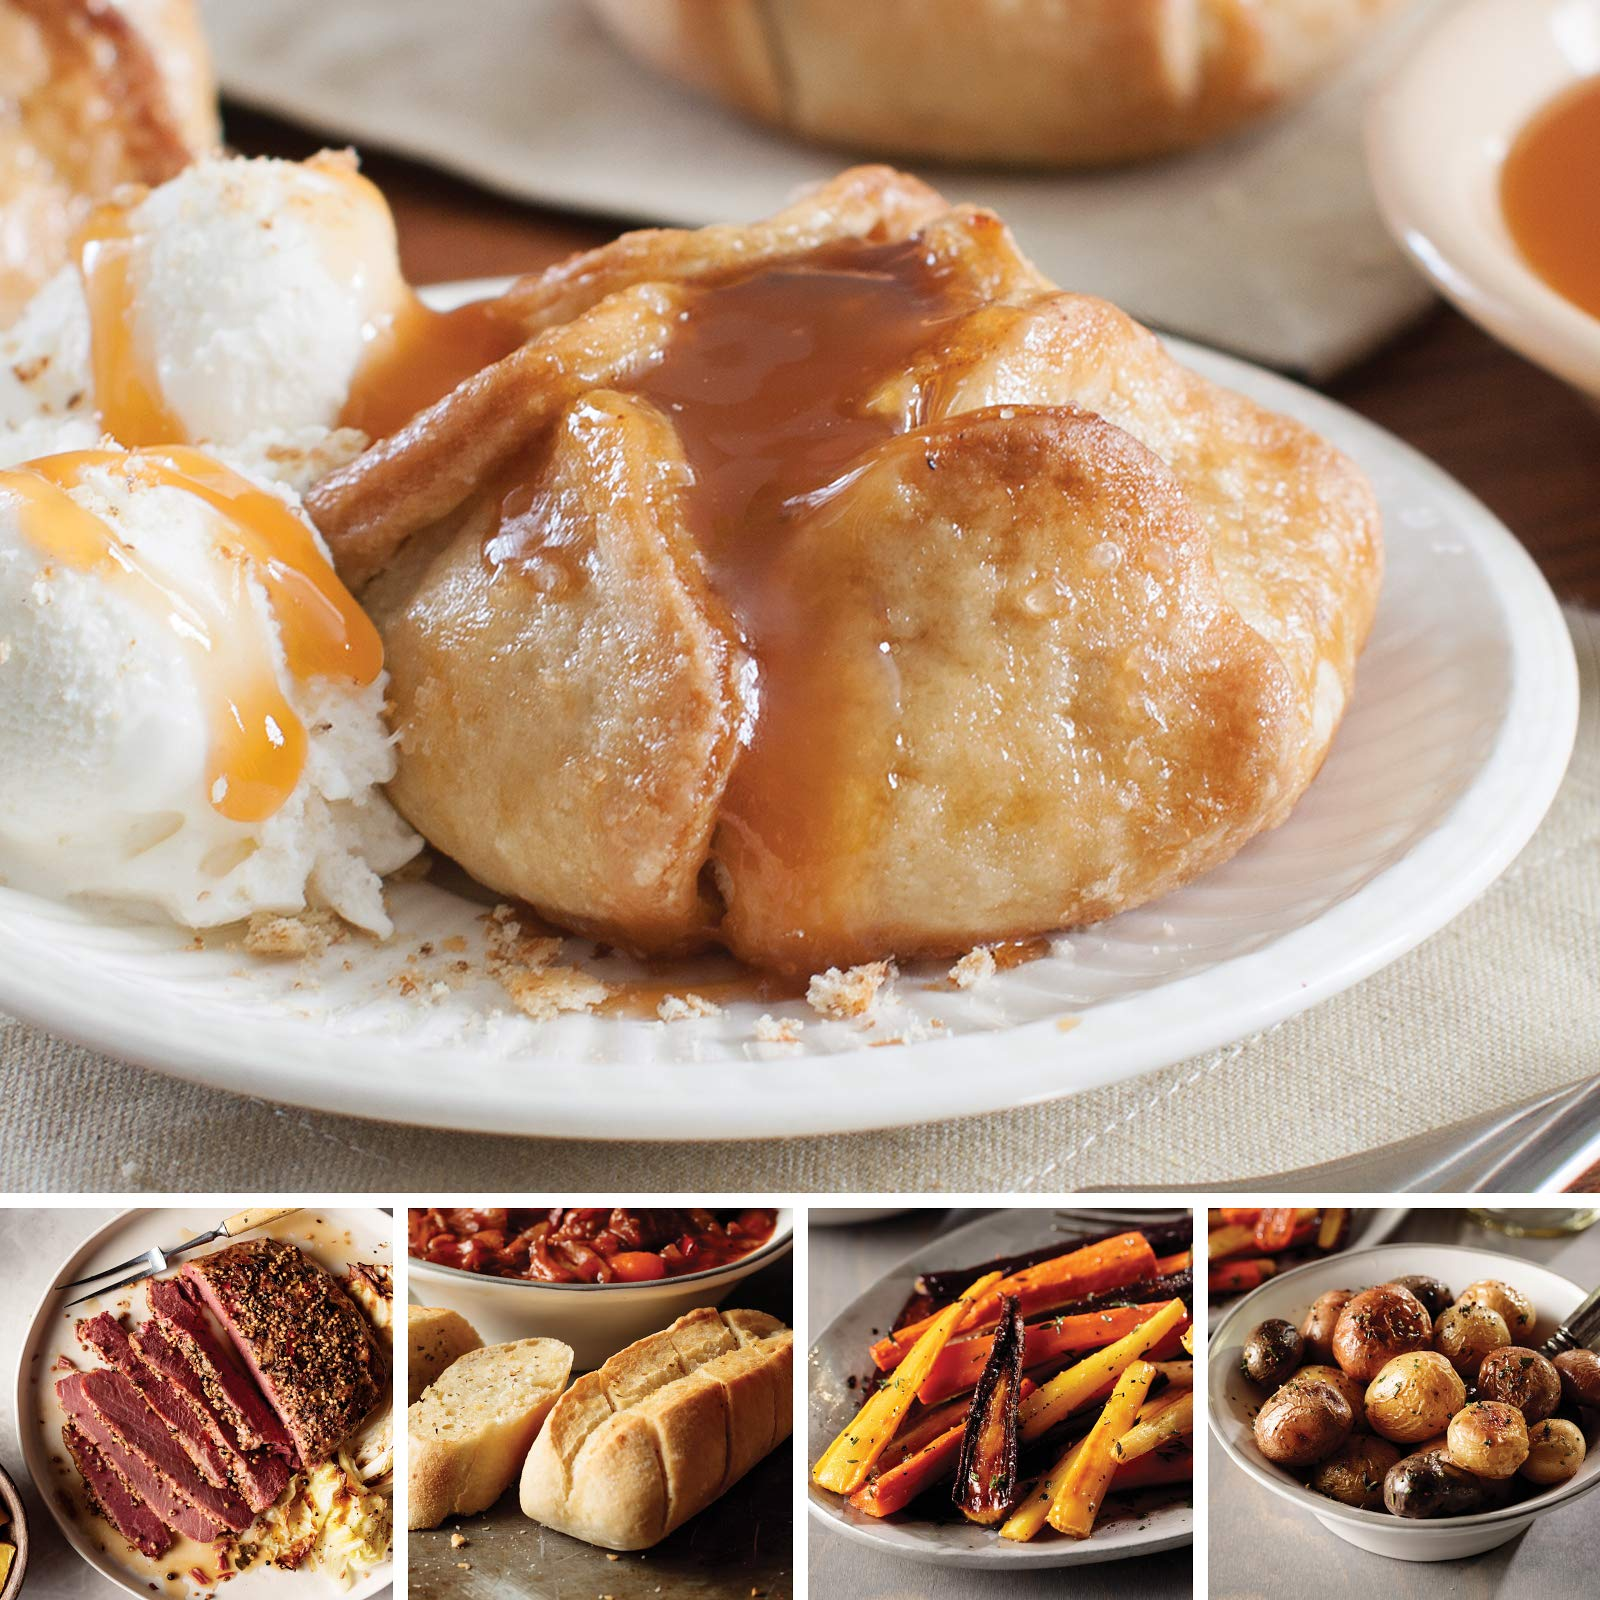 Omaha Steaks All Included St. Patrick's Day Essentials (11-Piece with Corned Beef Roast, Potatoes in Brown Butter Sauce, Glazed Carrots, Mini-Baguettes with Garlic Butter, and Caramel Apple Tartlets)